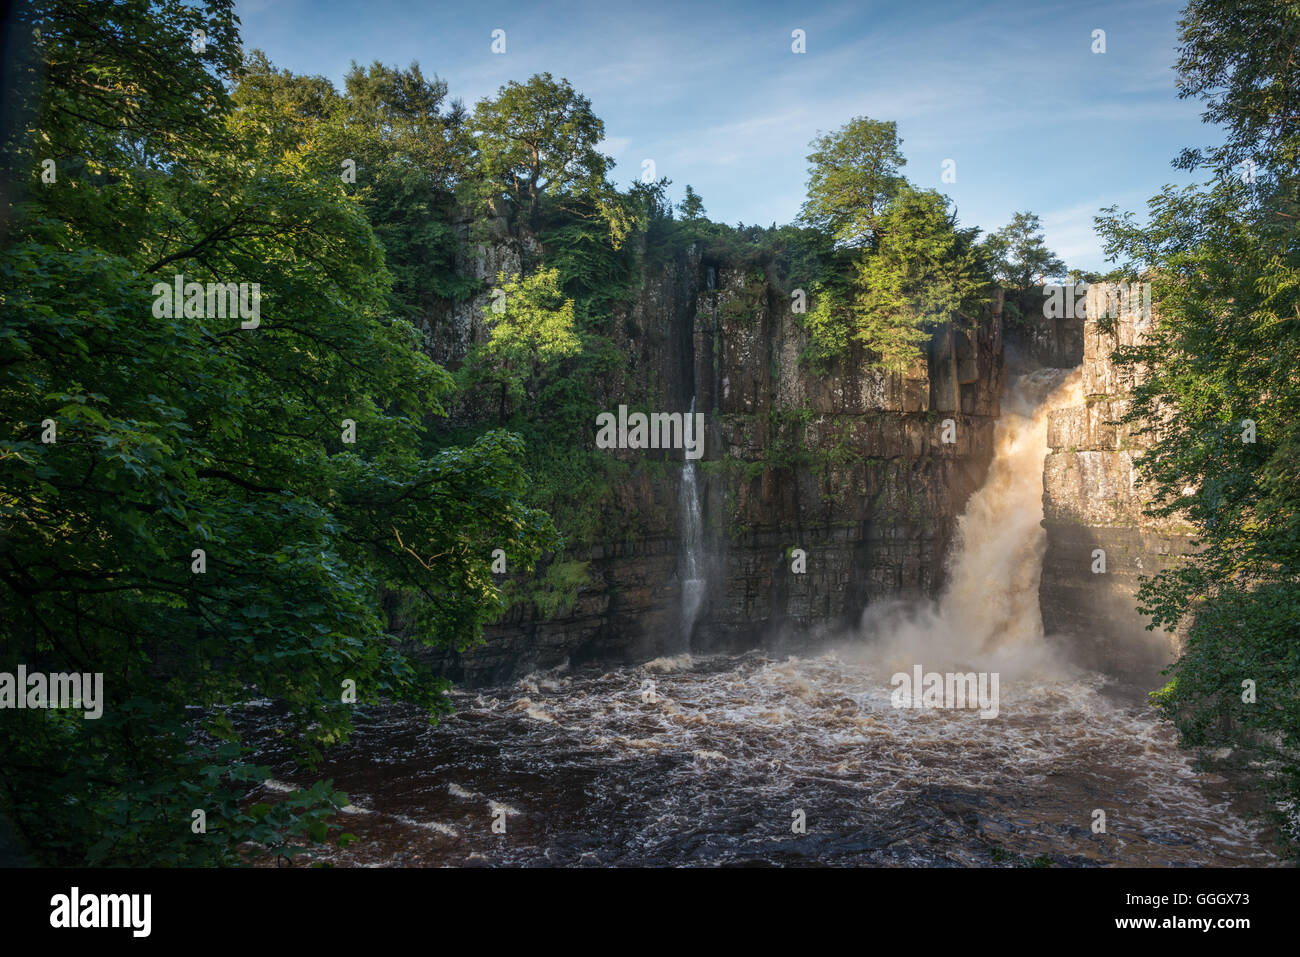 High Force waterfall, Middleton-in-Teesdale, County Durham, England, UK Stock Photo